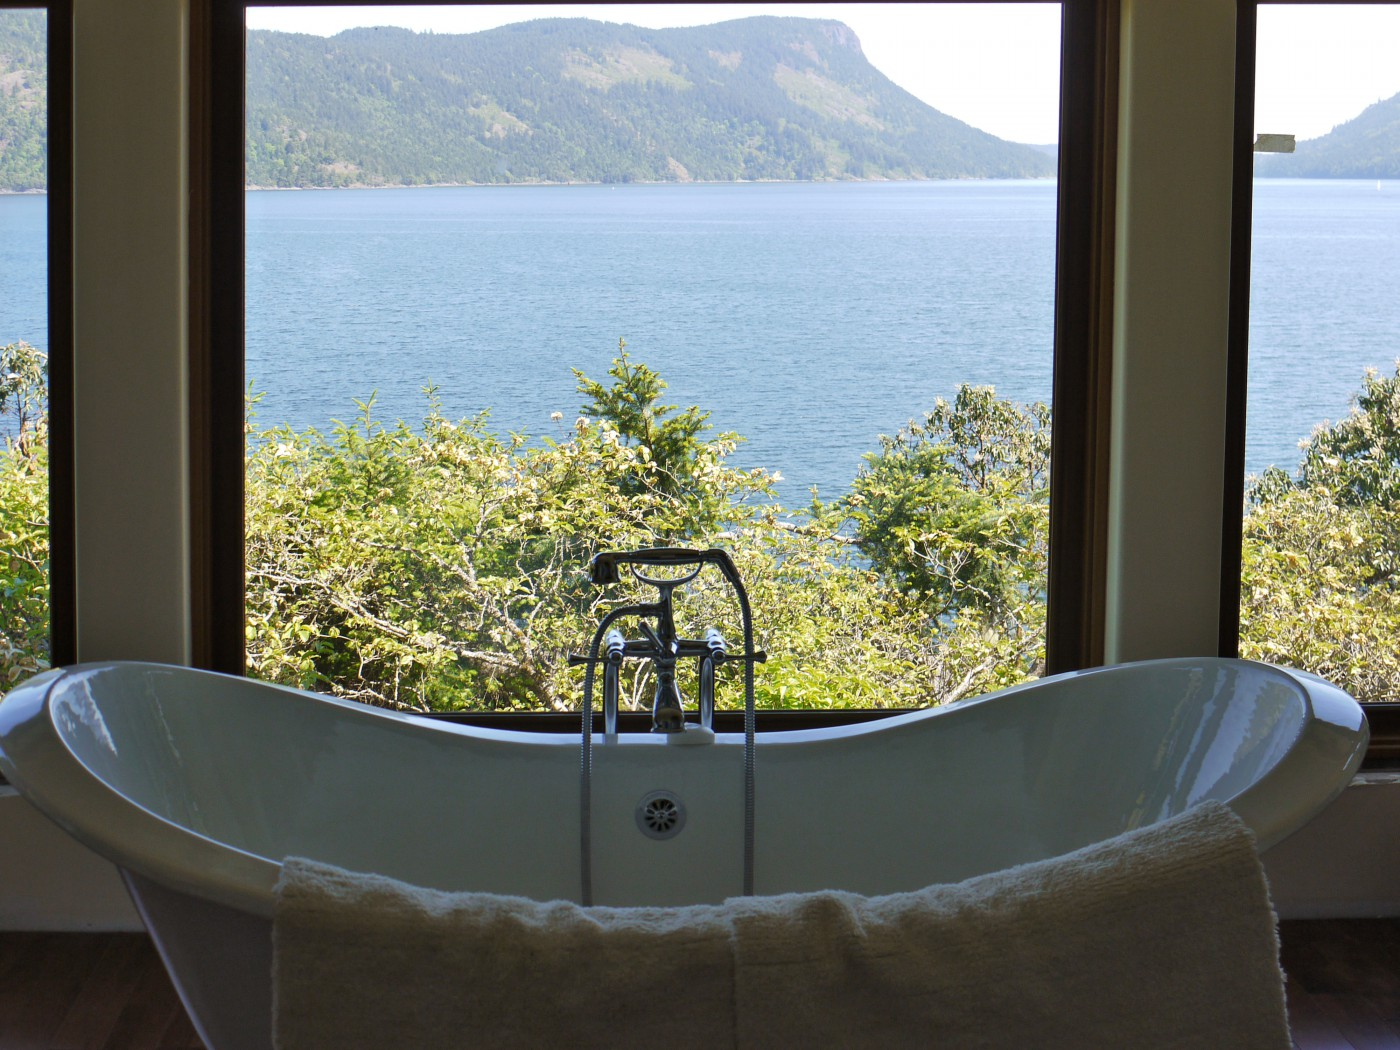 view from bathtub